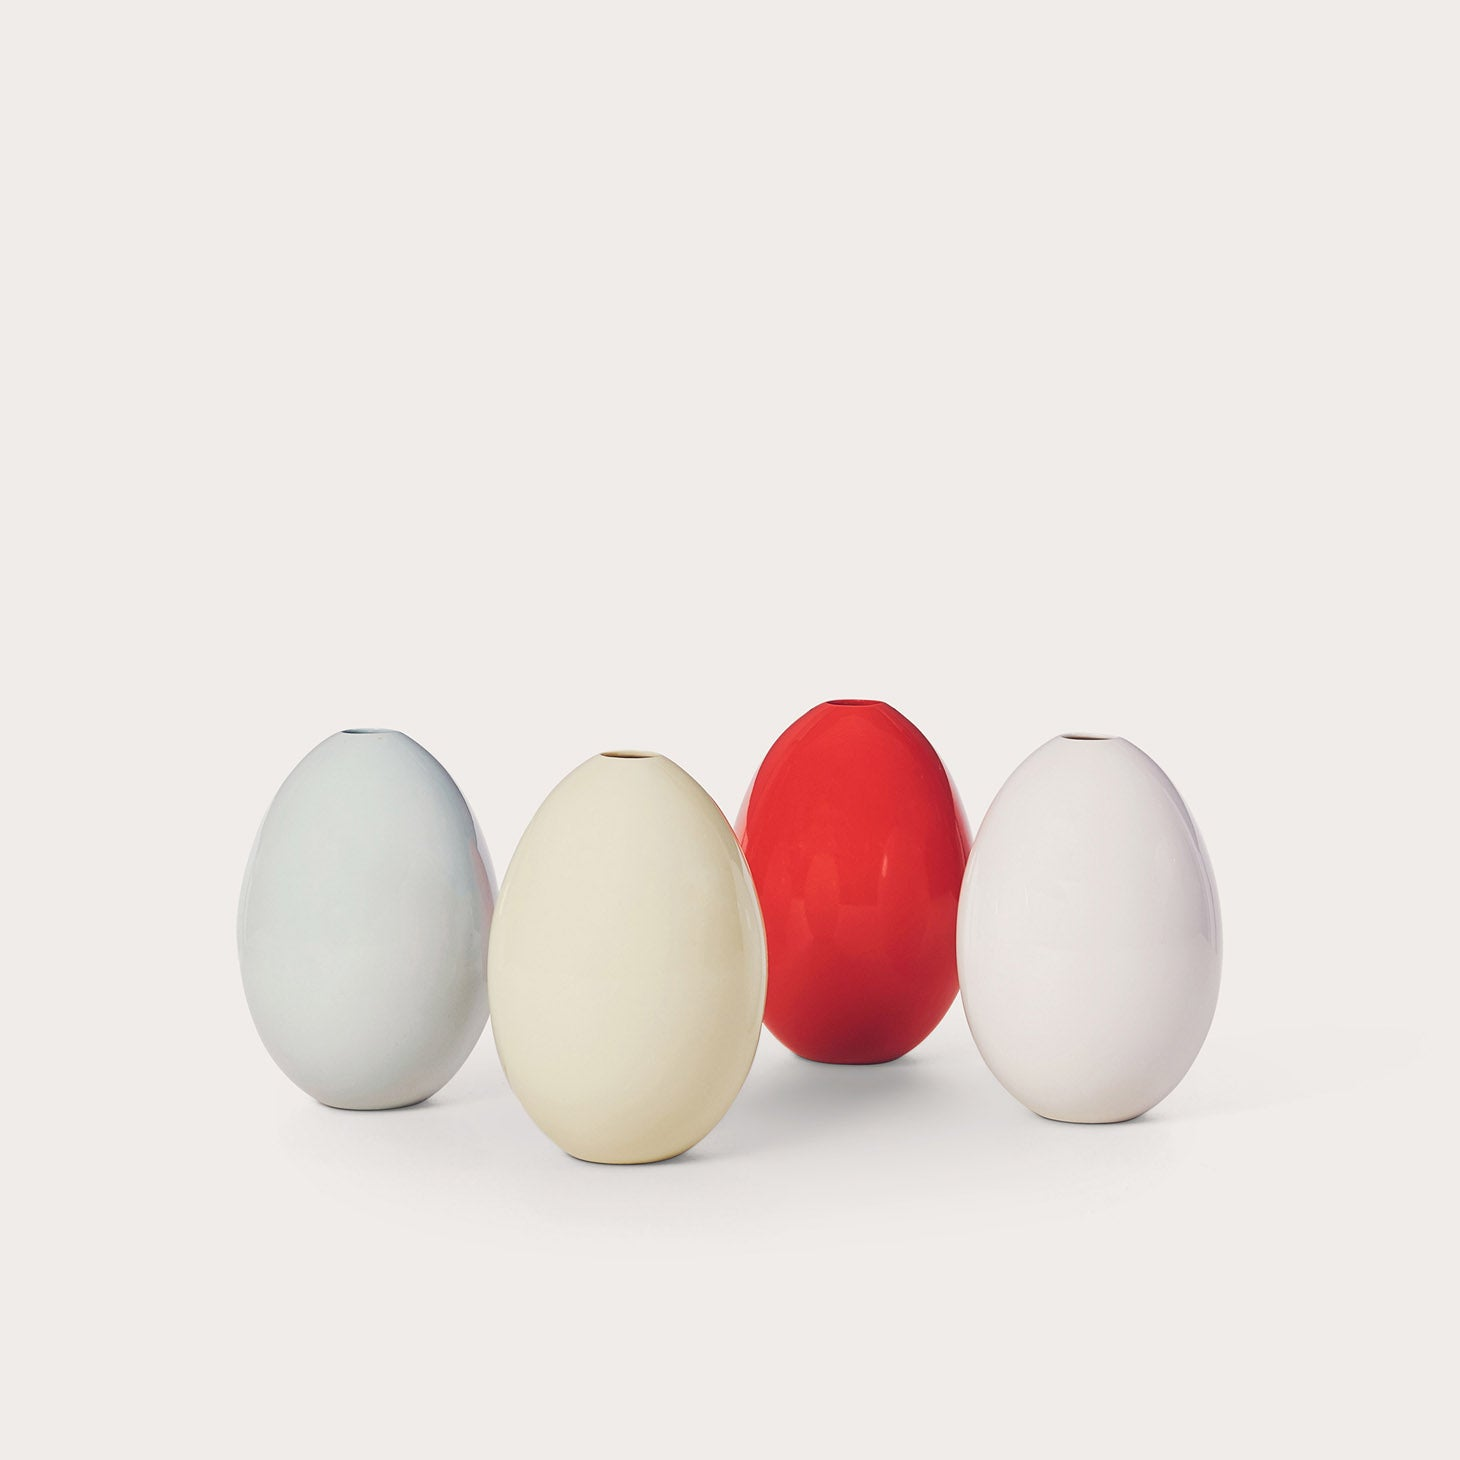 Egg Vase Accessories Nymphenburg Designer Furniture Sku: 542-100-10171